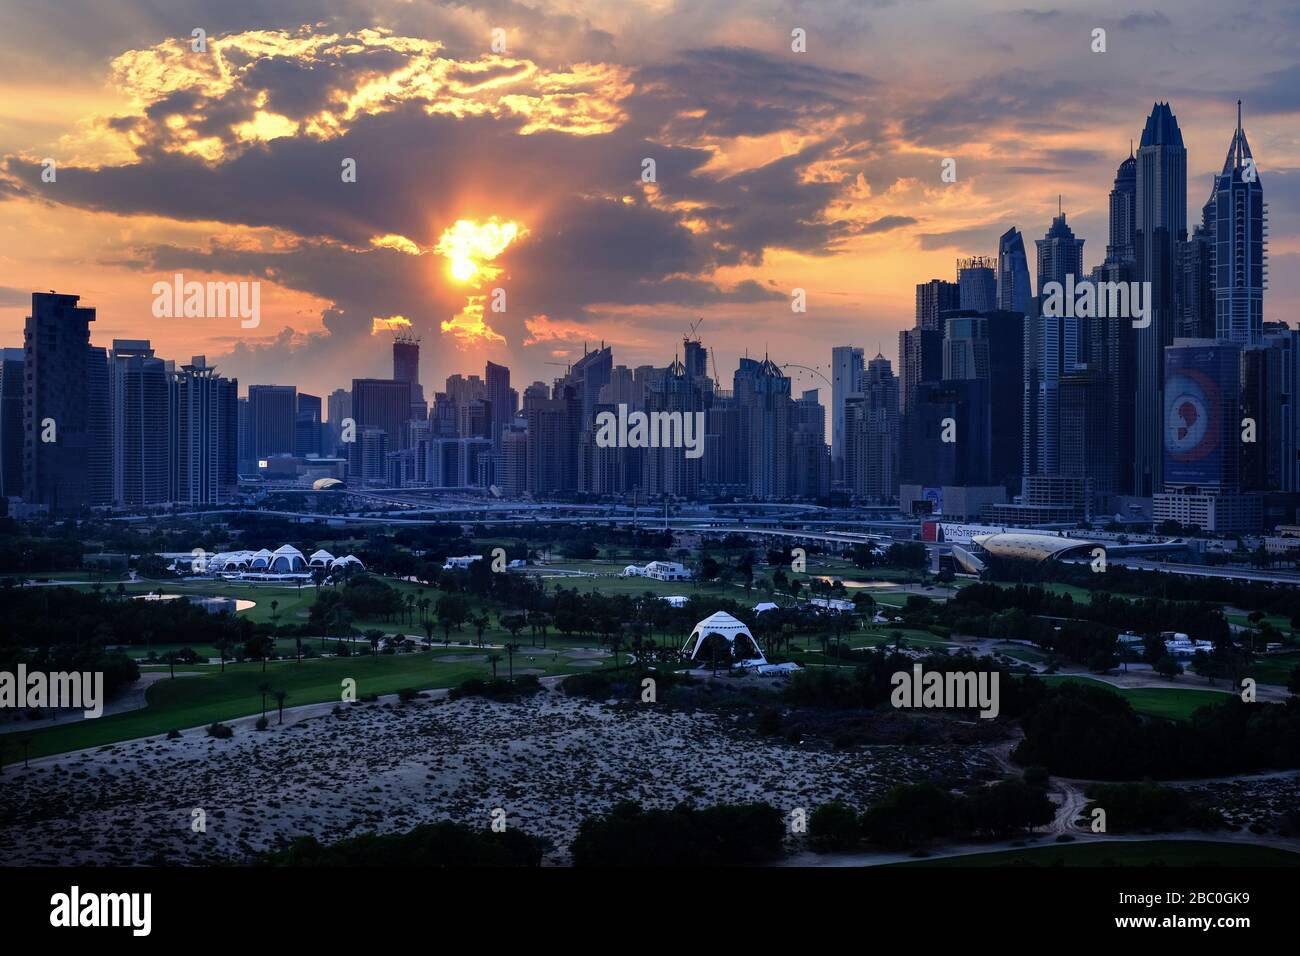 Sunset viewed from 17th floor apartment in Dubai, United Arab Emirates, with golf course in the foreground. Stock Photo